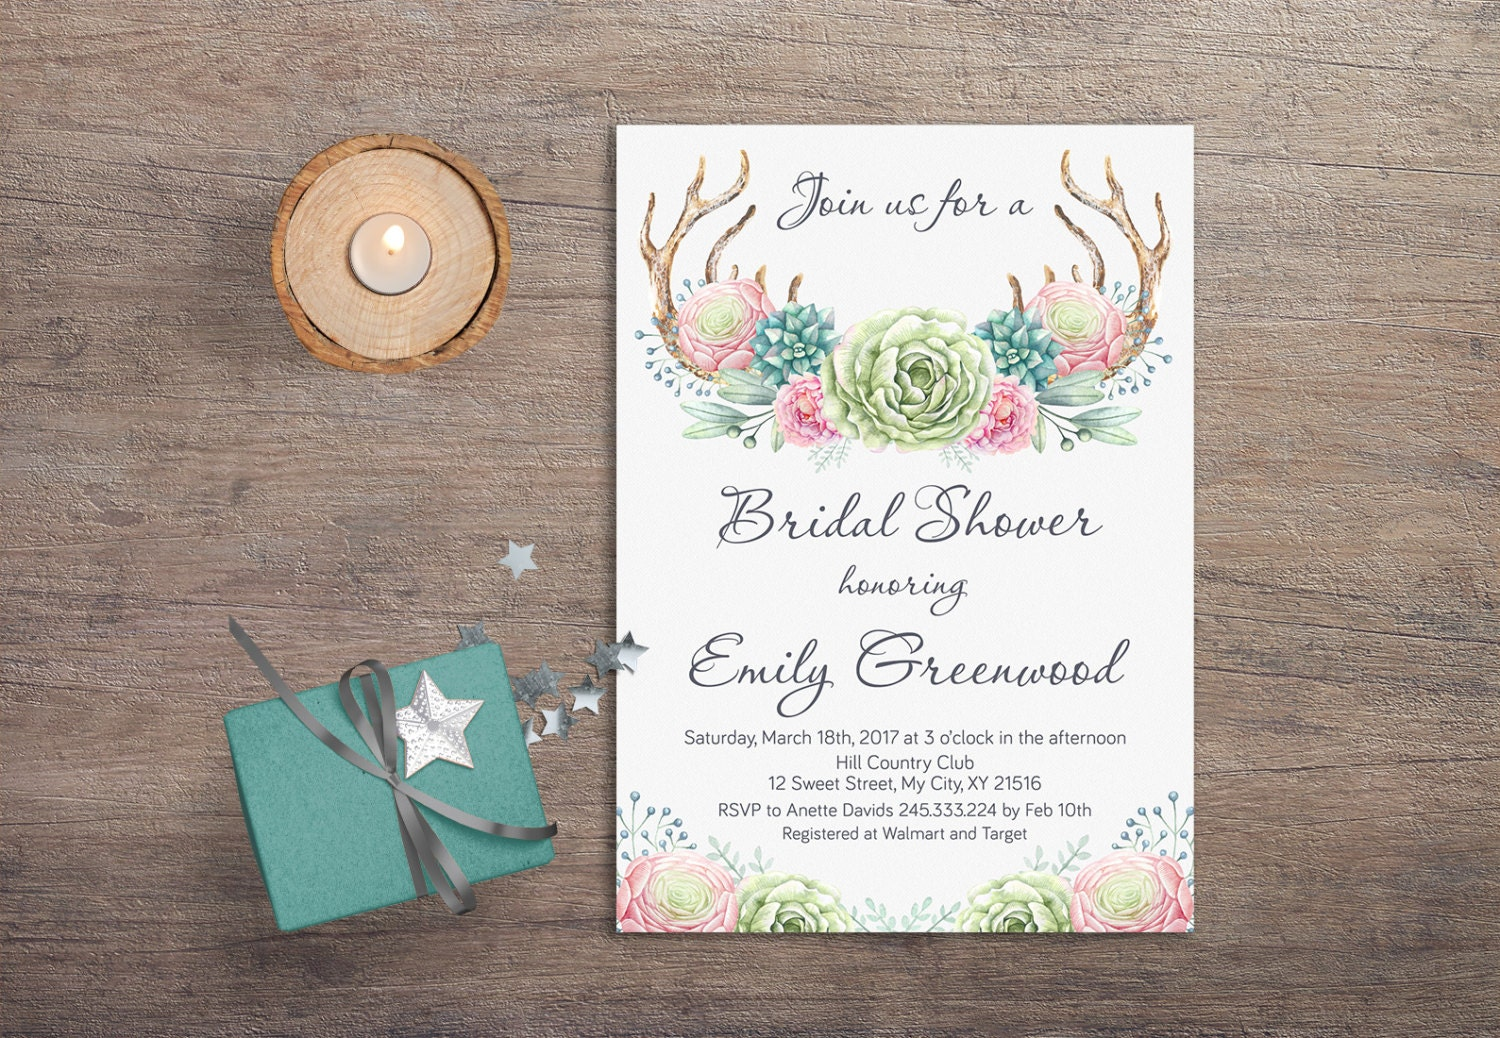 Deer Antlers Bridal Shower Invitation